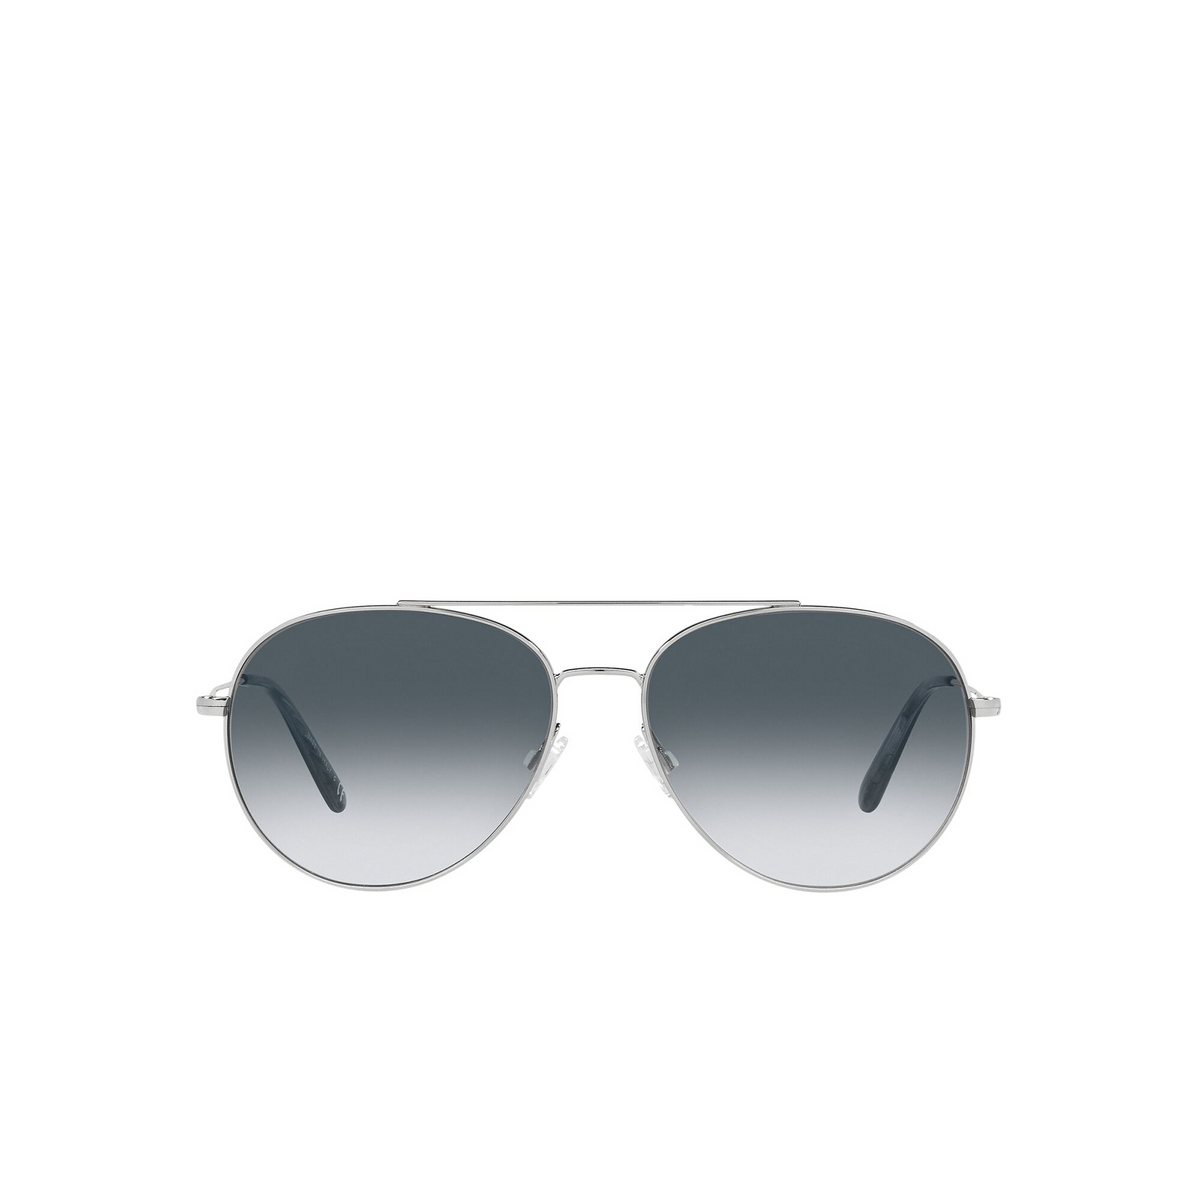 Oliver Peoples® Aviator Sunglasses: Airdale OV1286S color Silver 50363F - front view.